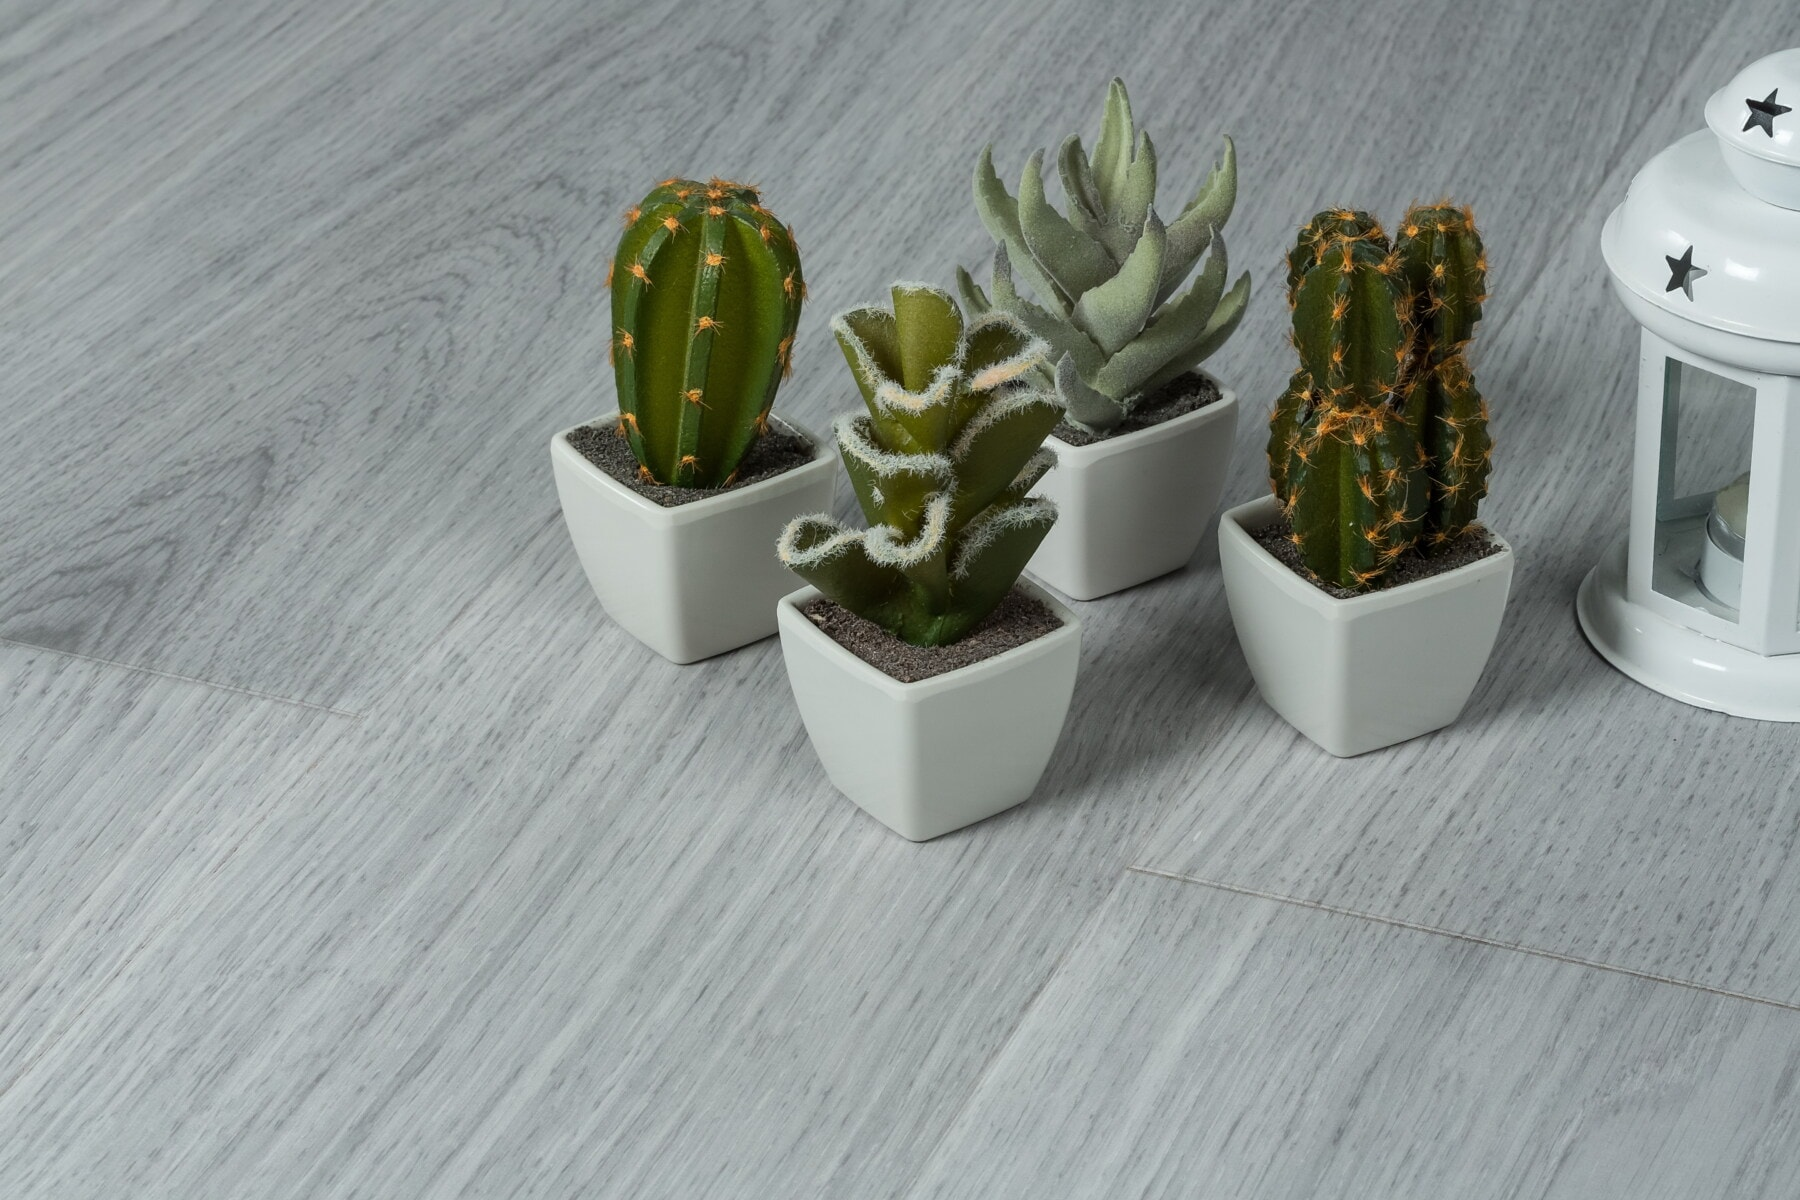 minimalism, interior design, miniature, interior decoration, flowerpot, elegant, cactus, detail, design, floor